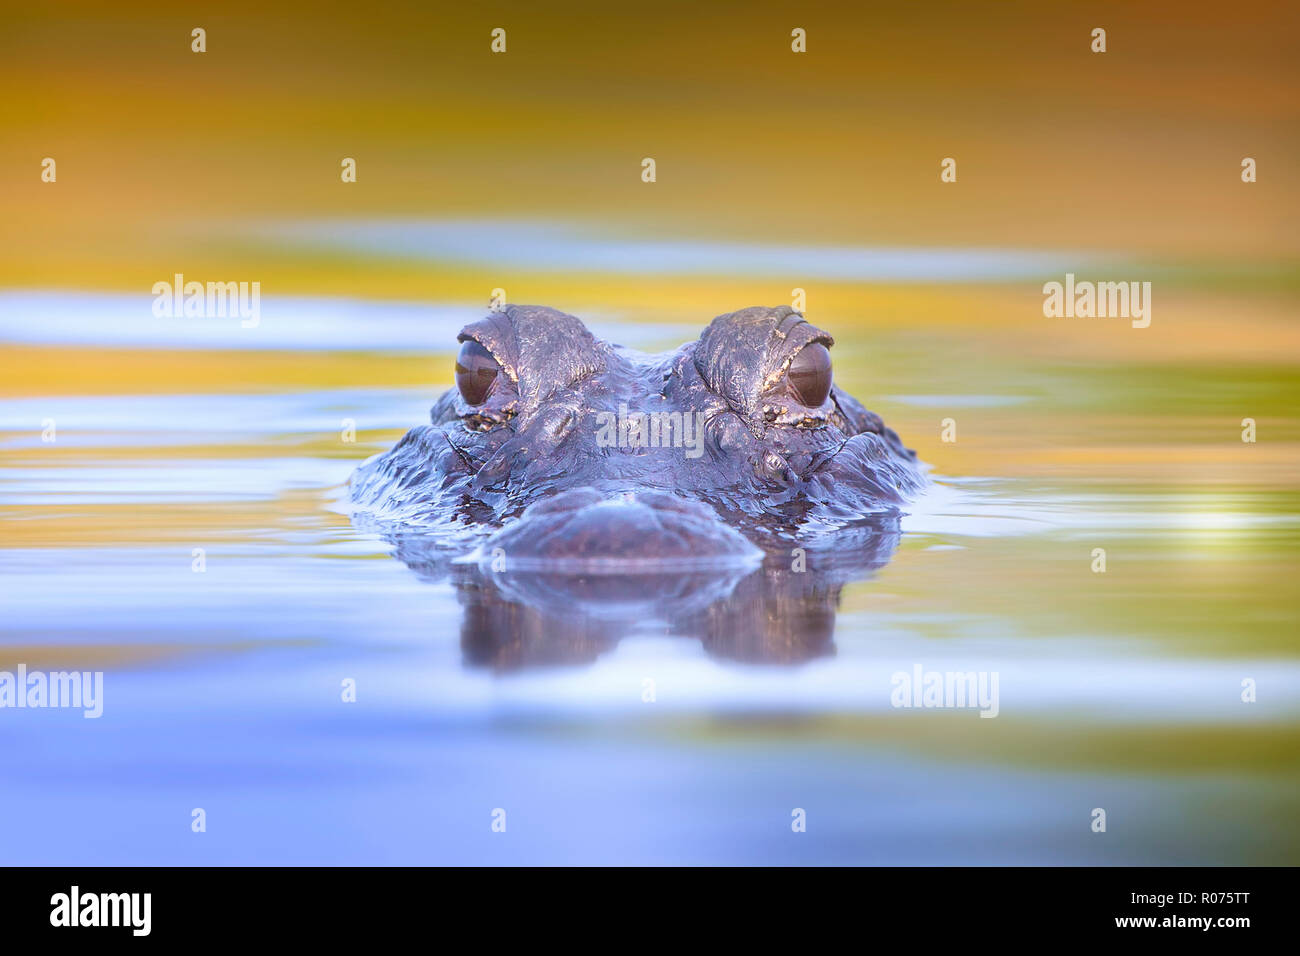 A juvenile American Alligator surfaces in the Florida Everglades. - Stock Image